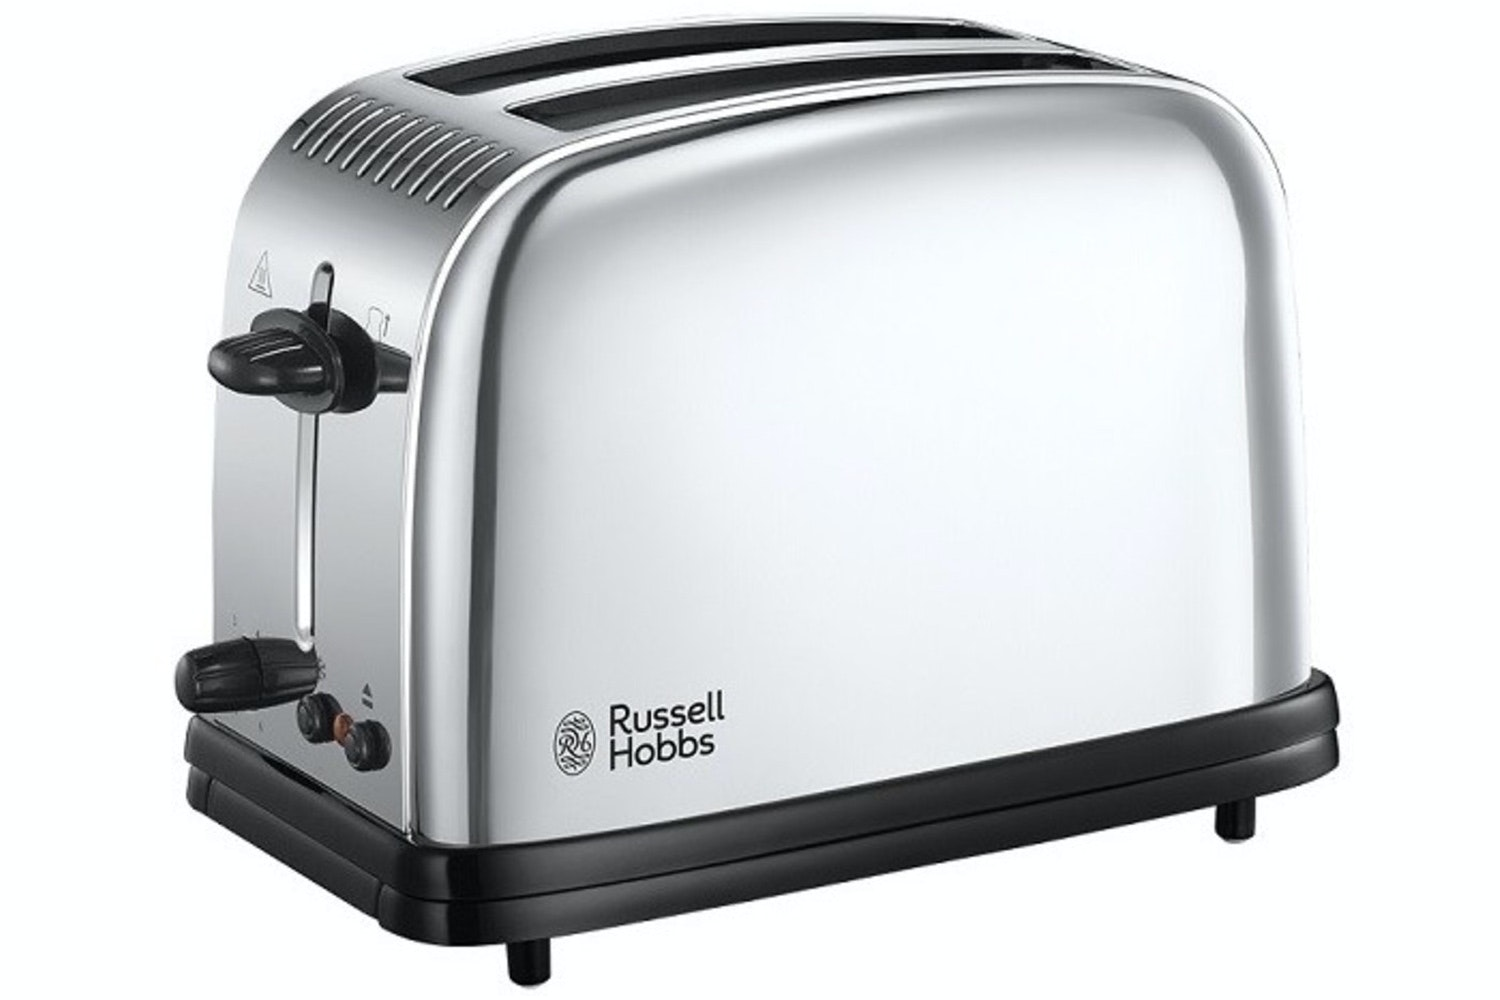 Russell Hobbs Classic 2 Slice Toaster | 23310